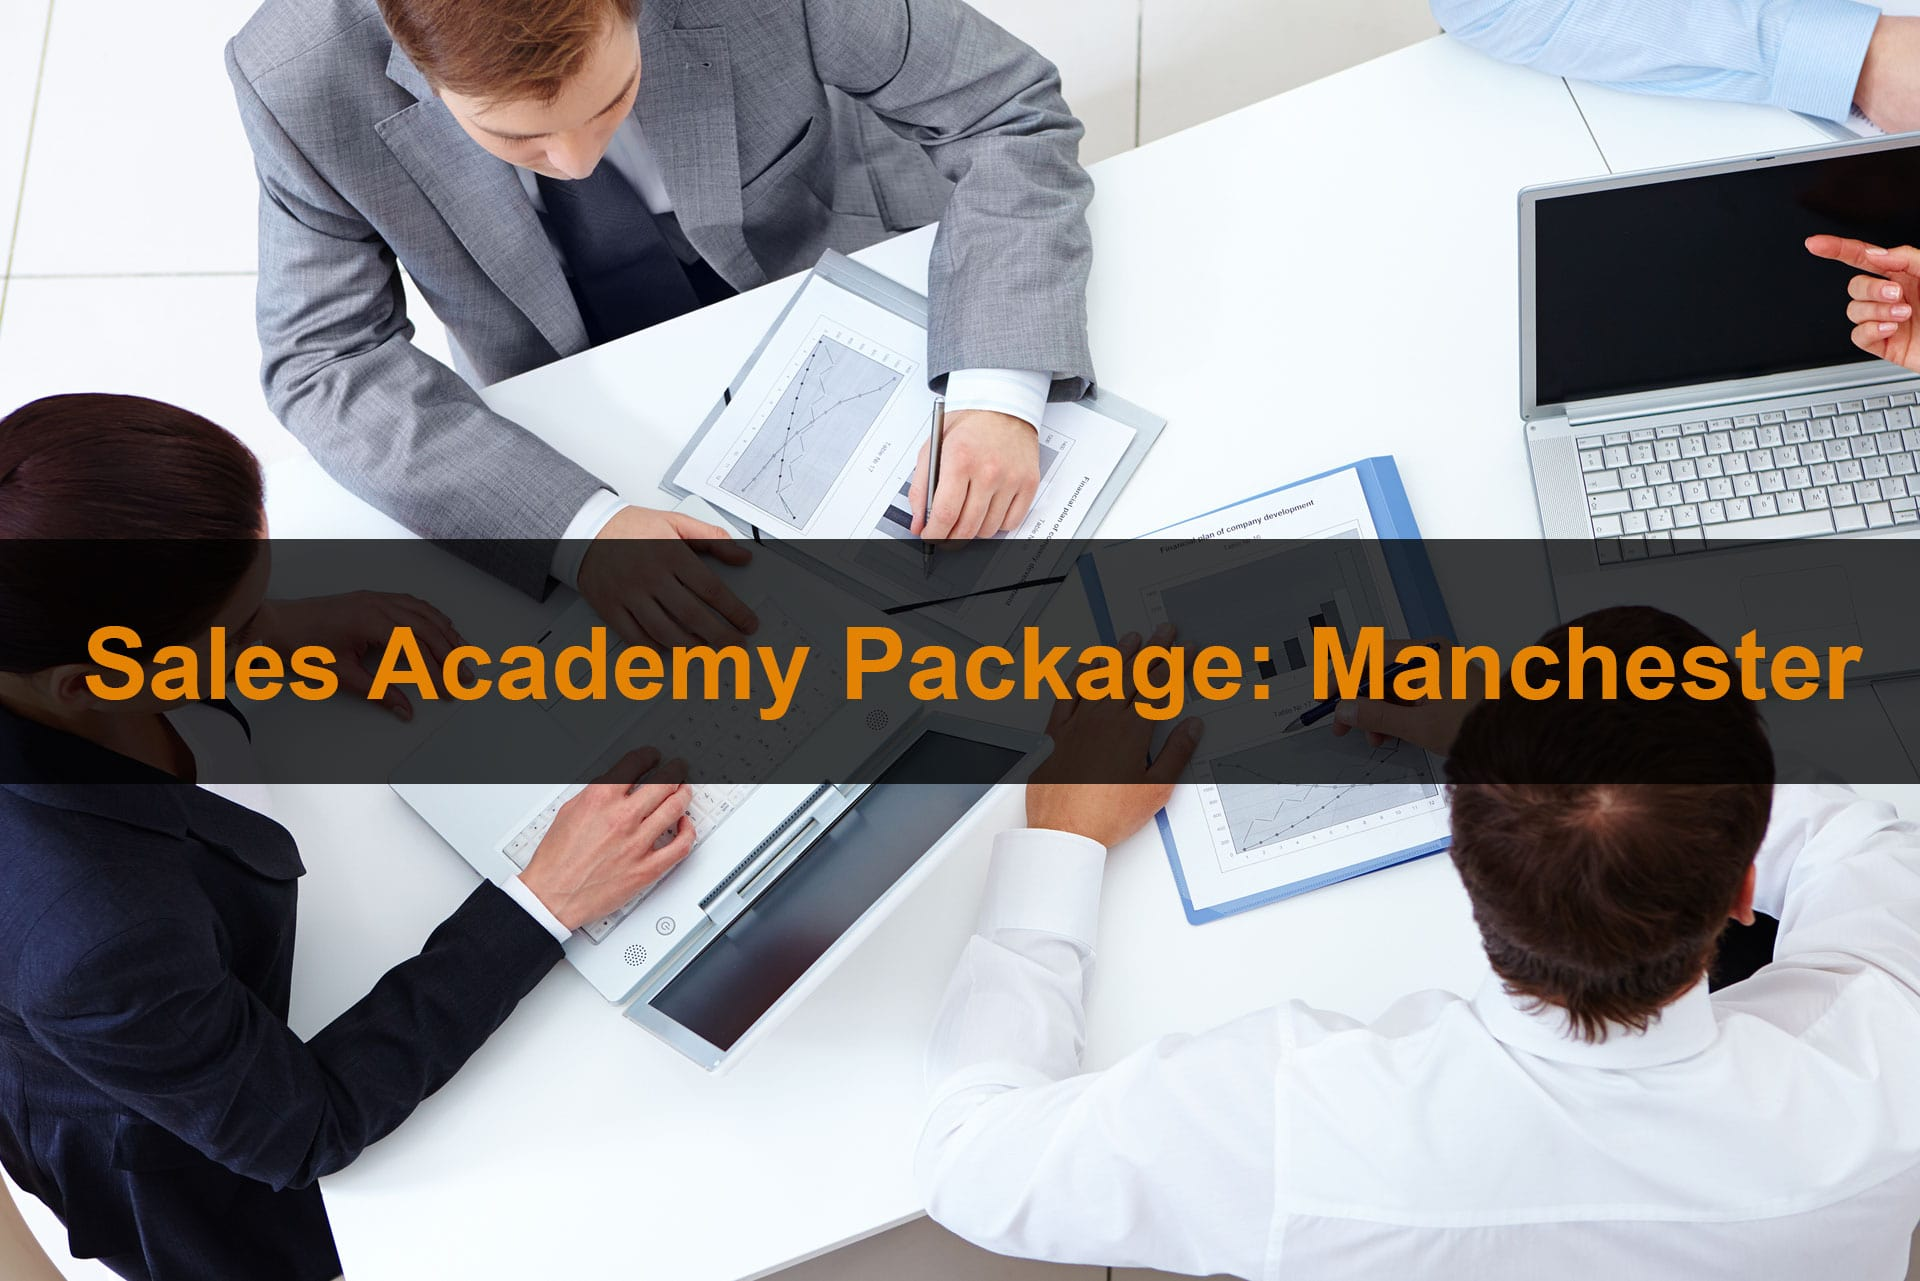 Sales-Academy-Package---Manchester-Artwork-2019-jpg-min